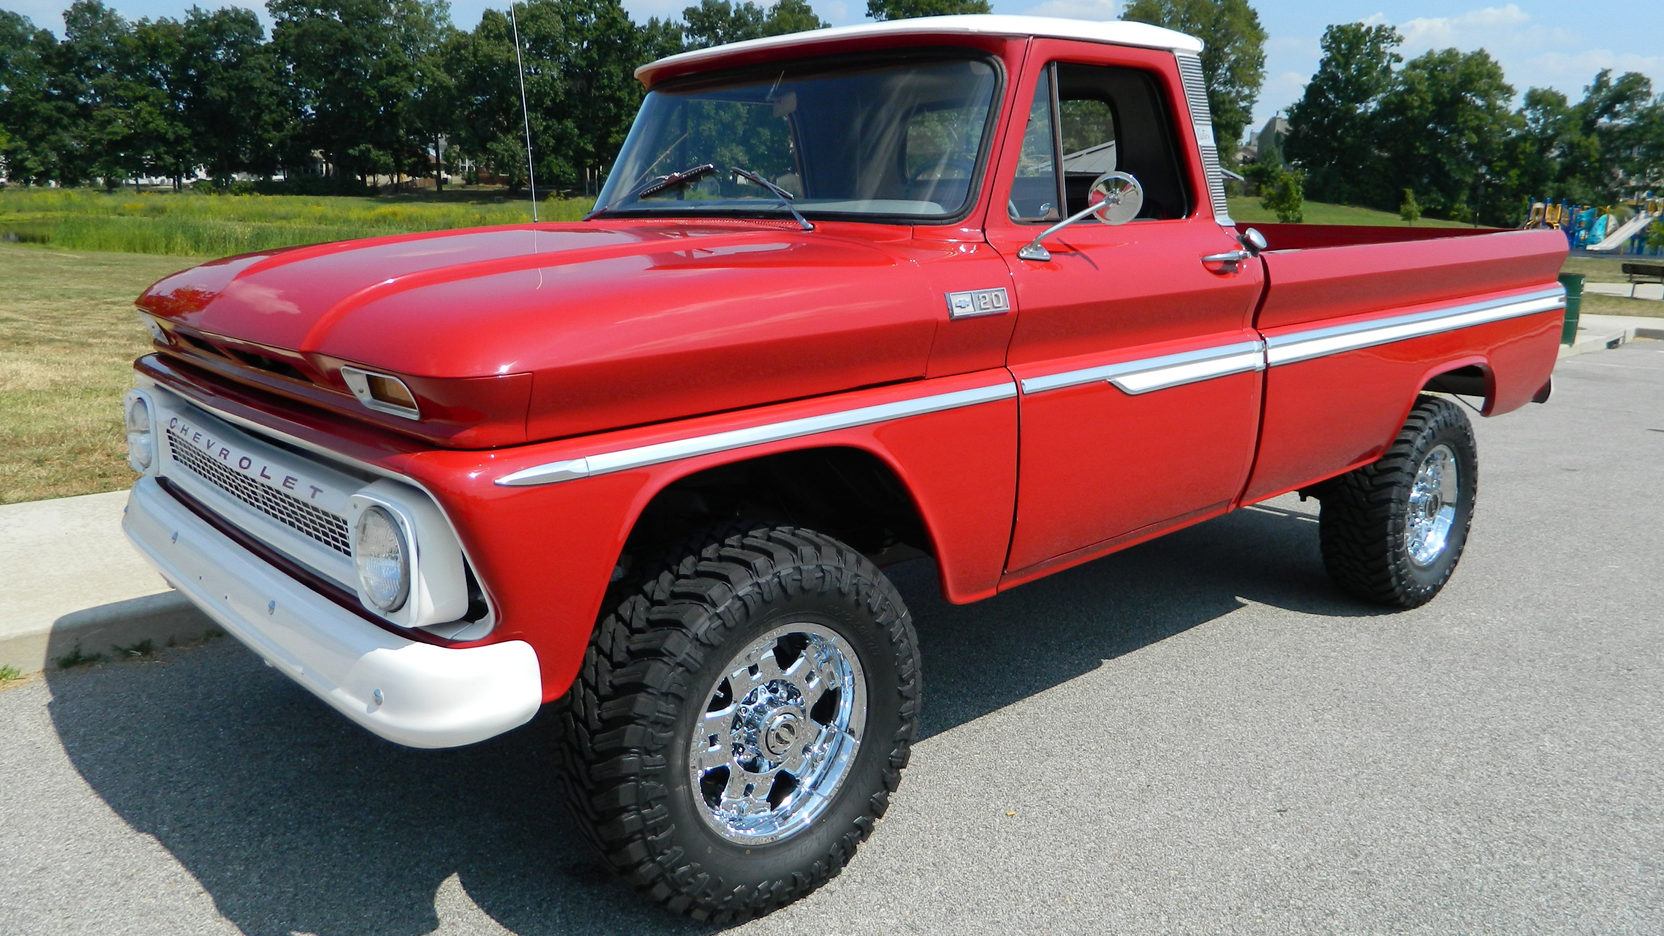 1965 Chevy Truck Restomod 1965 Chevy Truck fuel injected RESTOMOD YouTube1200 HP 1965 Chevy C10